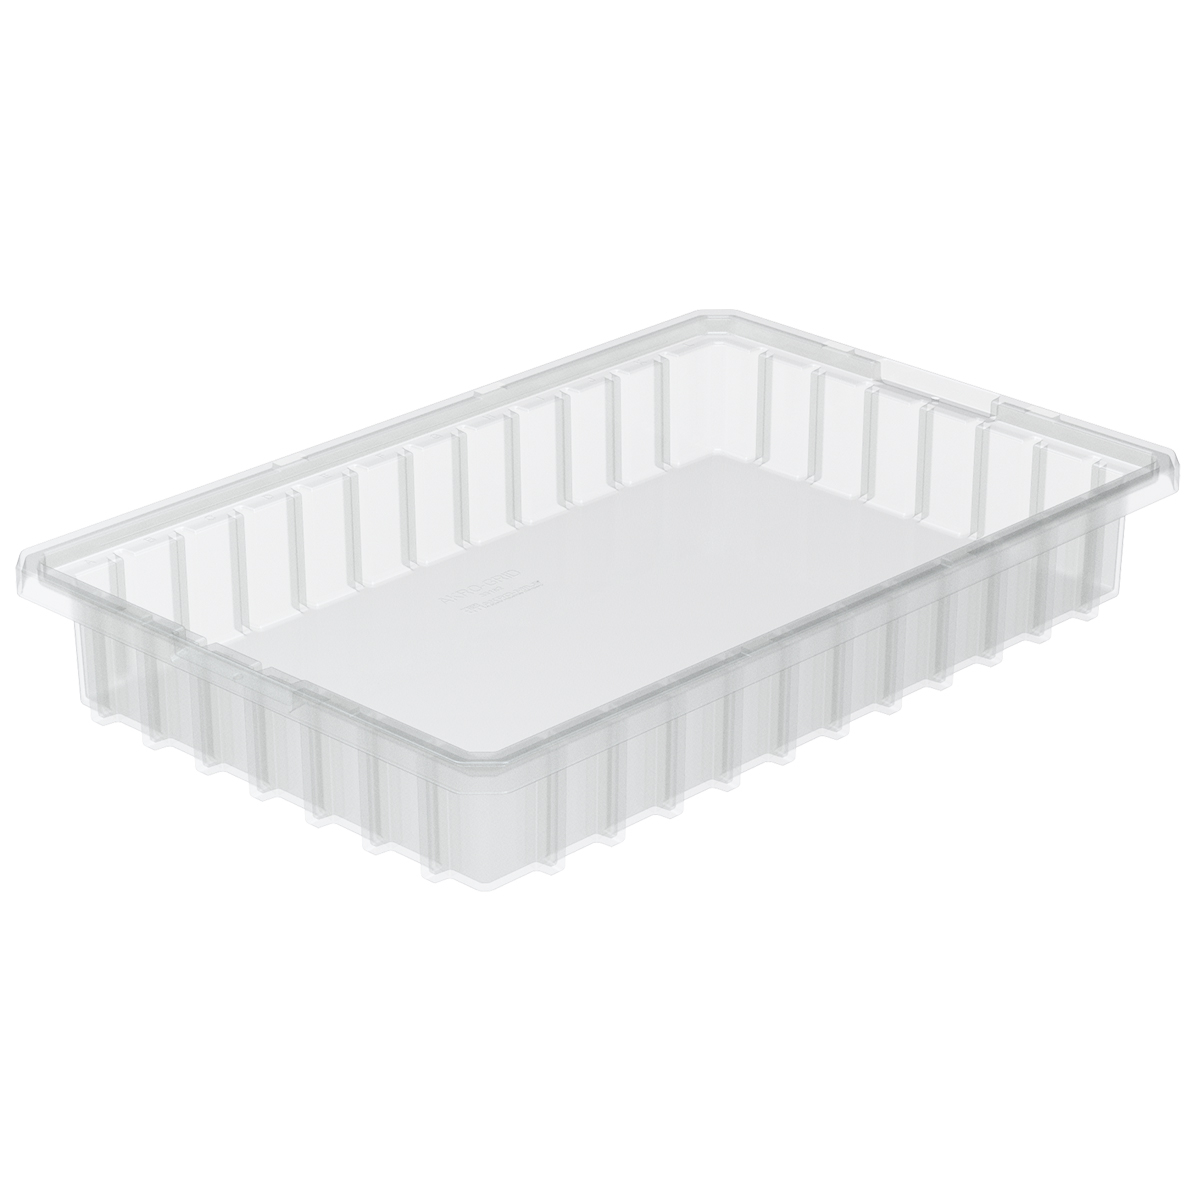 Akro-Grid Dividable Box 16-1/2 x 10-7/8 x 2-1/2, Clear.  This item sold in carton quantities of 12.